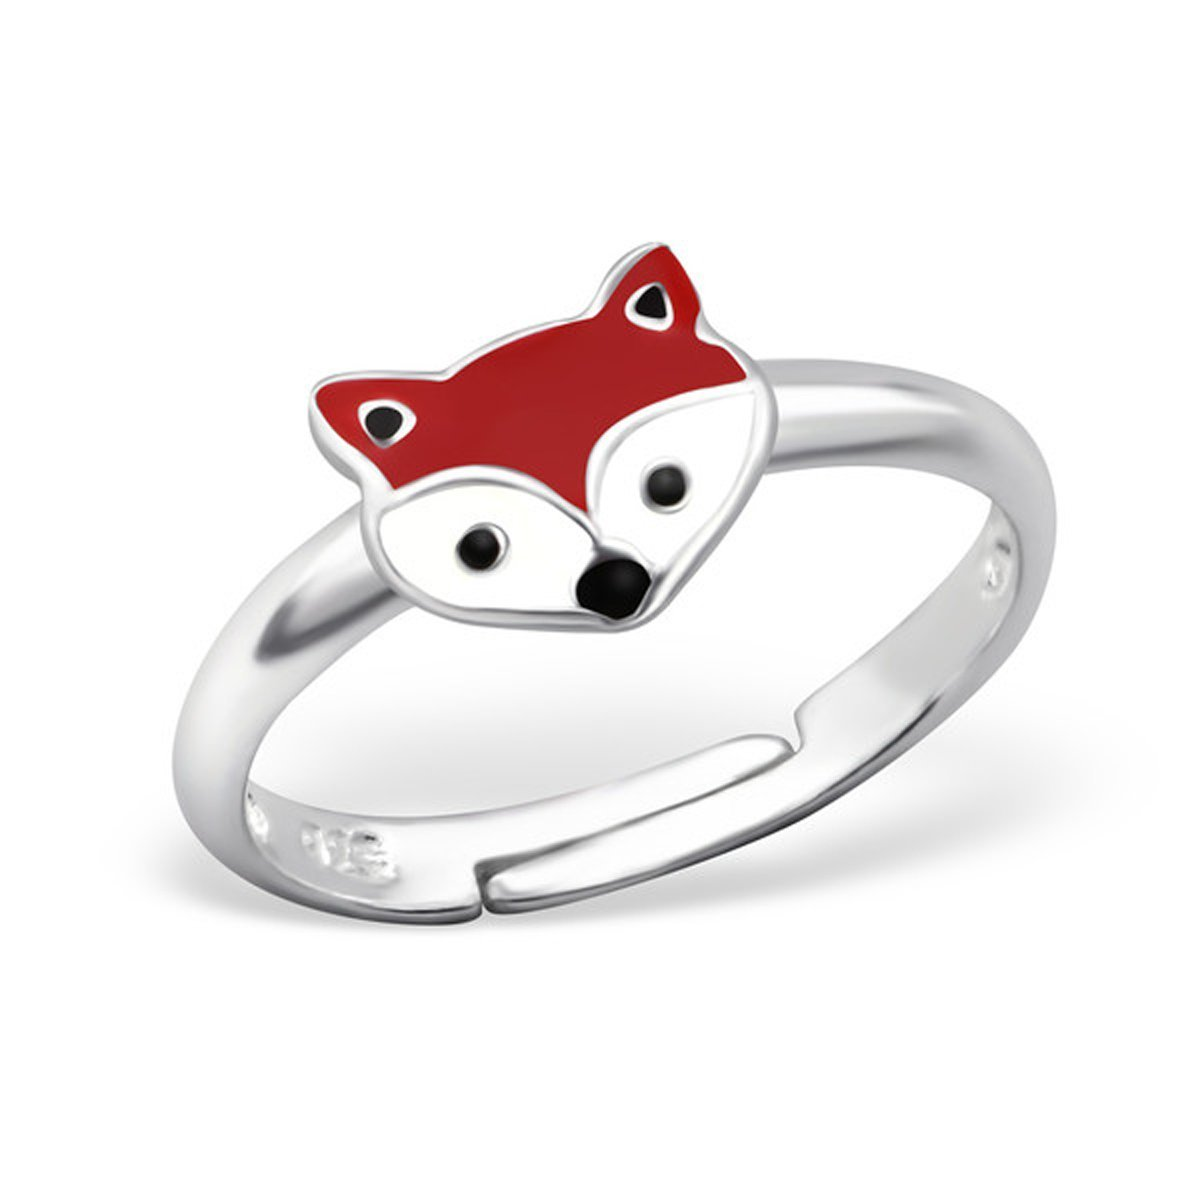 Fox Ring Cute Girl Children Jewelry Size Adjustable Sterling Silver 925 (E27729)